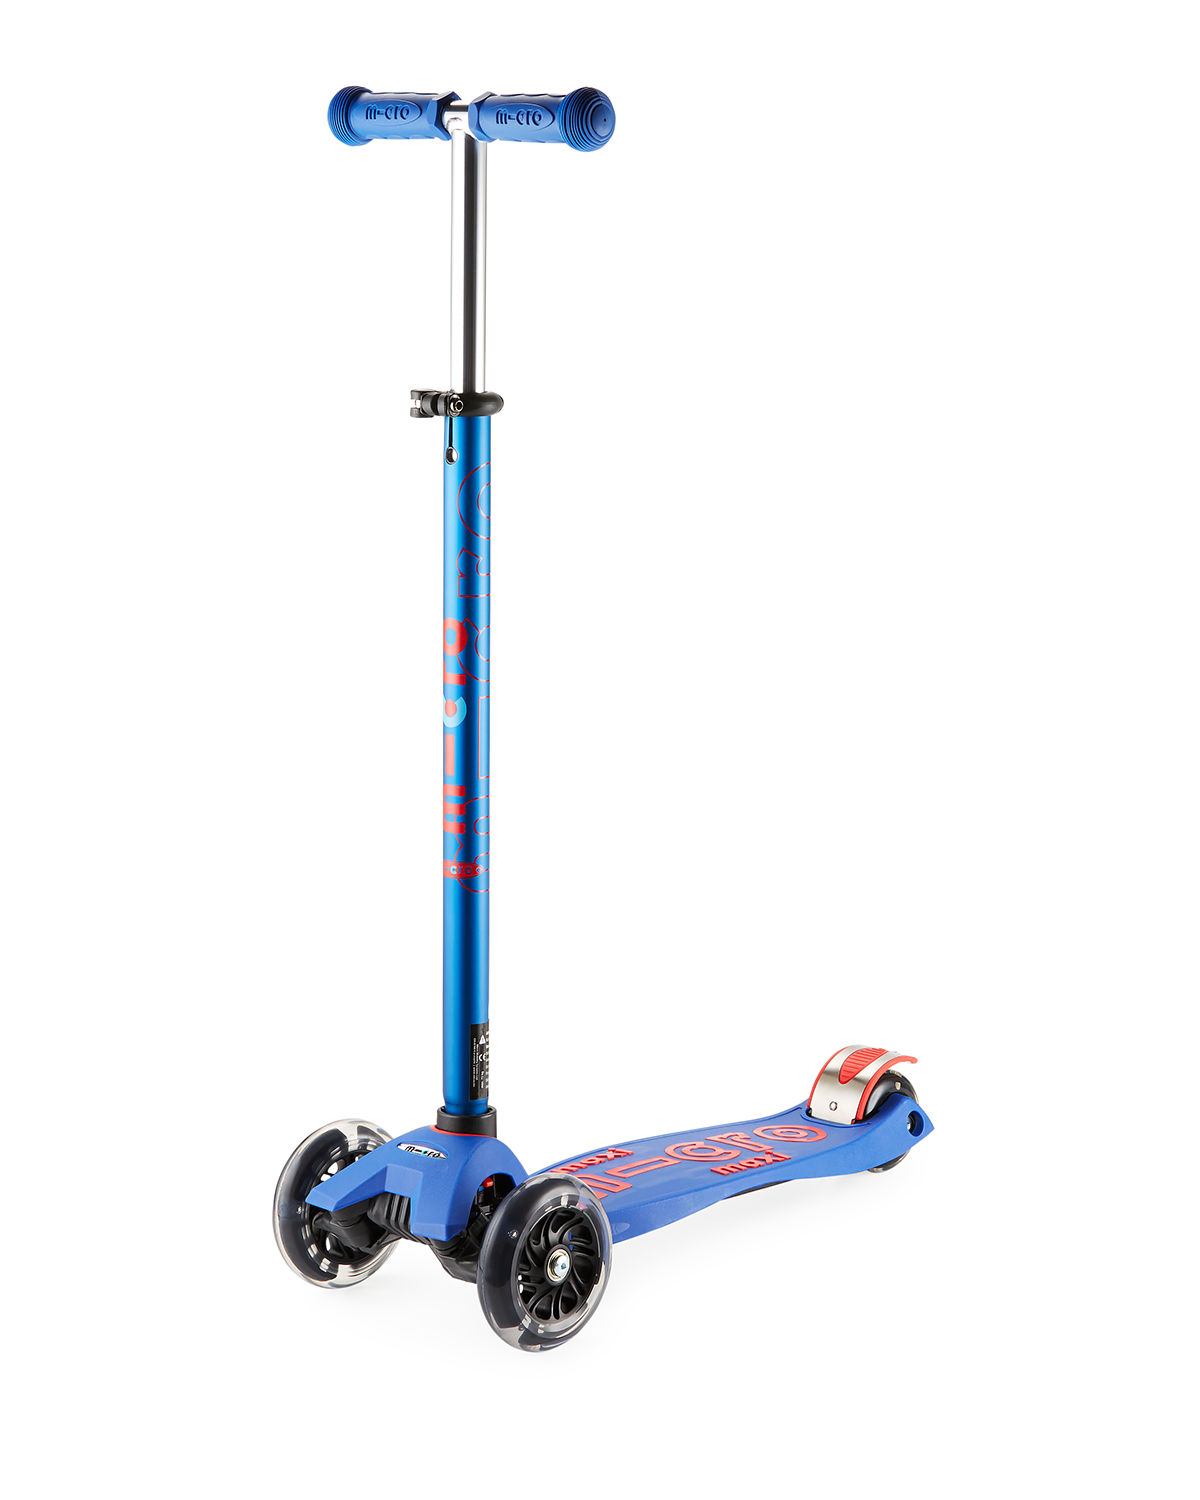 Kids Maxi Deluxe Scooter w LightUp Wheels